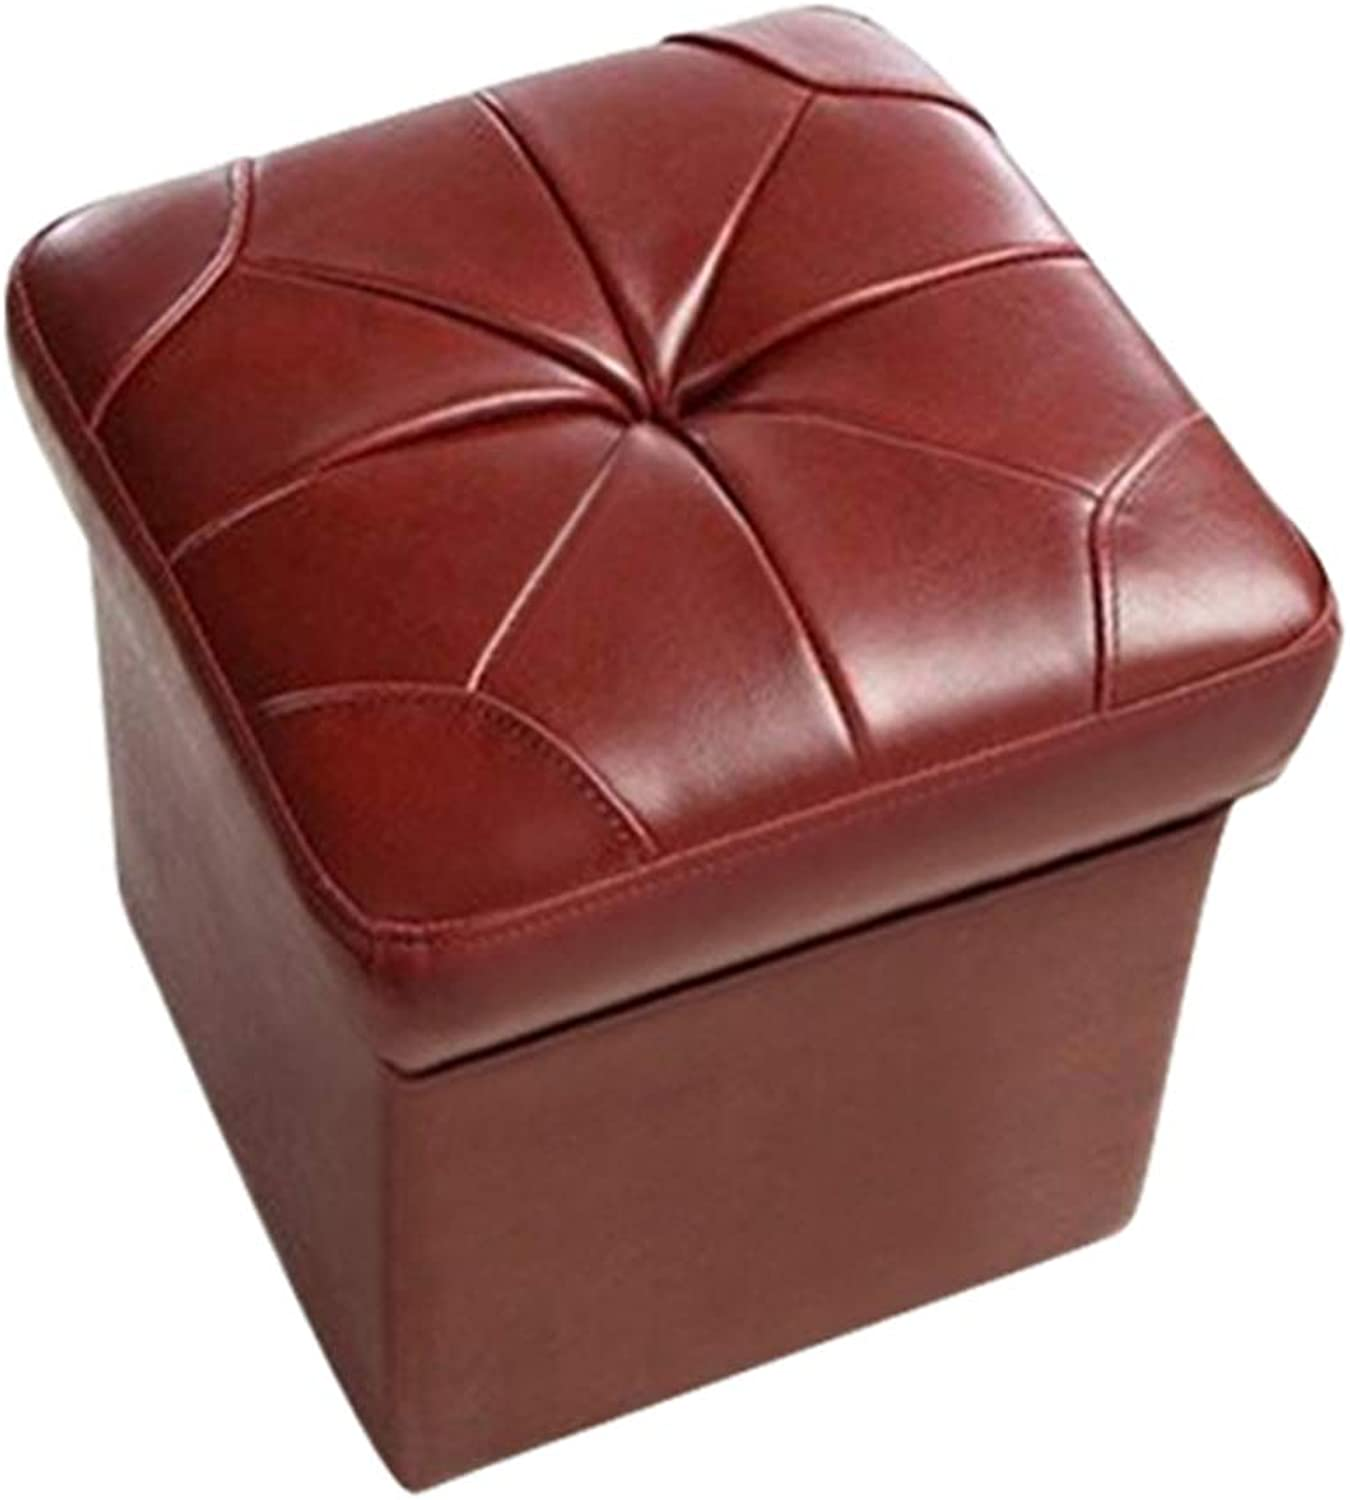 AGLZWY Sofa Stool Multipurpose Solid Wood Frame Genuine Leather Breathable Wear Resistant Fashion Living Room Square Stool Footstool, 6 colors, 40X40cm (color   A, Size   40X40cm)